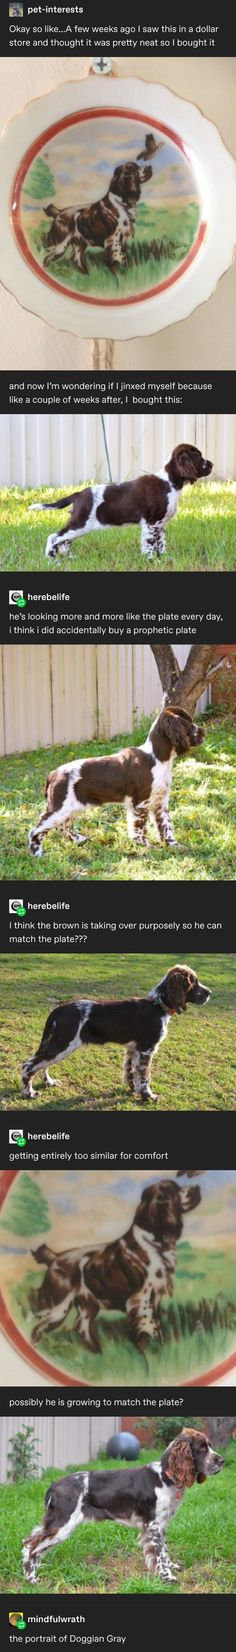 27 Animals That Start With M in The World [Pictures of Animals] Animal Memes, Funny Animals, Cute Animals, Tumblr Funny, Funny Memes, Hilarious, Comedy, Tumblr Posts, Funny Posts